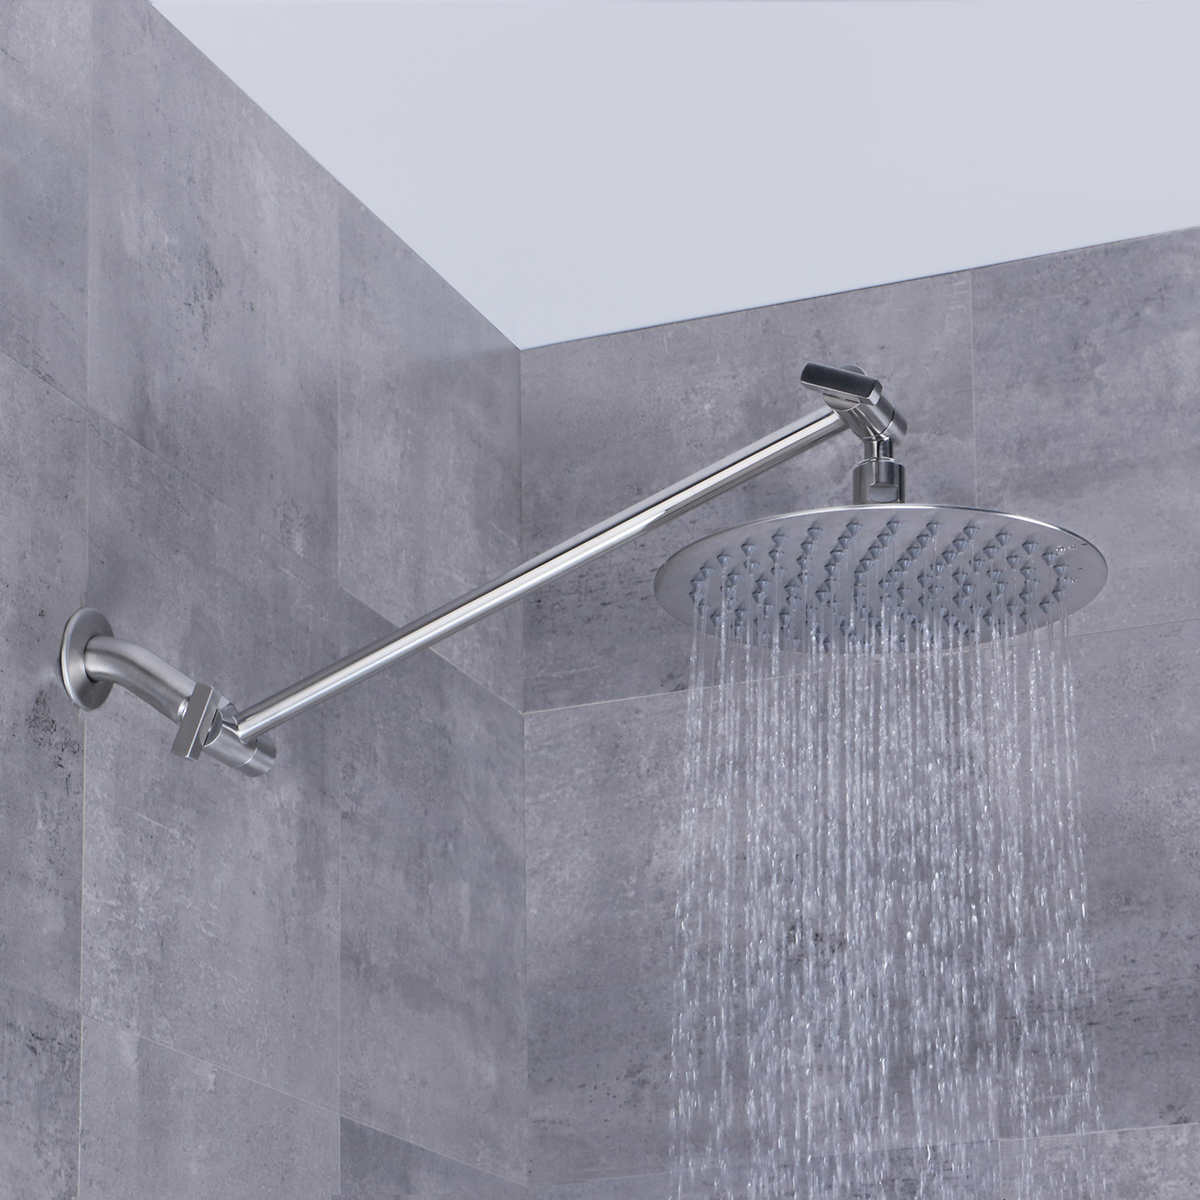 Afa Stainless 8 Rain Shower Head With Extension Arm